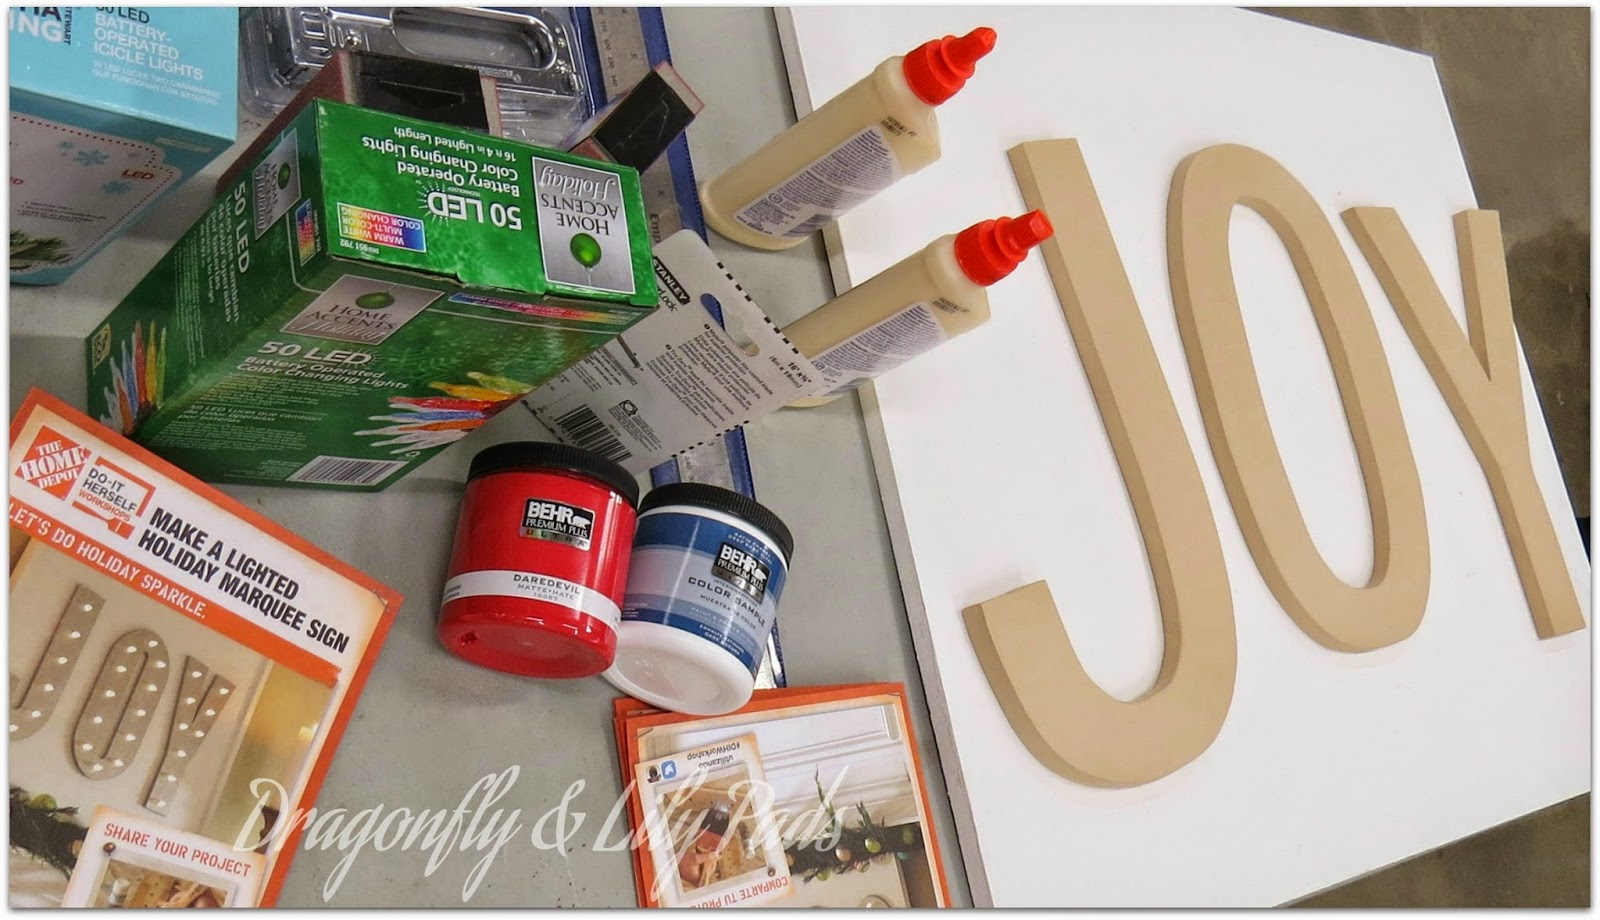 Letters, Joy, Home Depot Do It Herself Workshop, Directions, Wood Glue